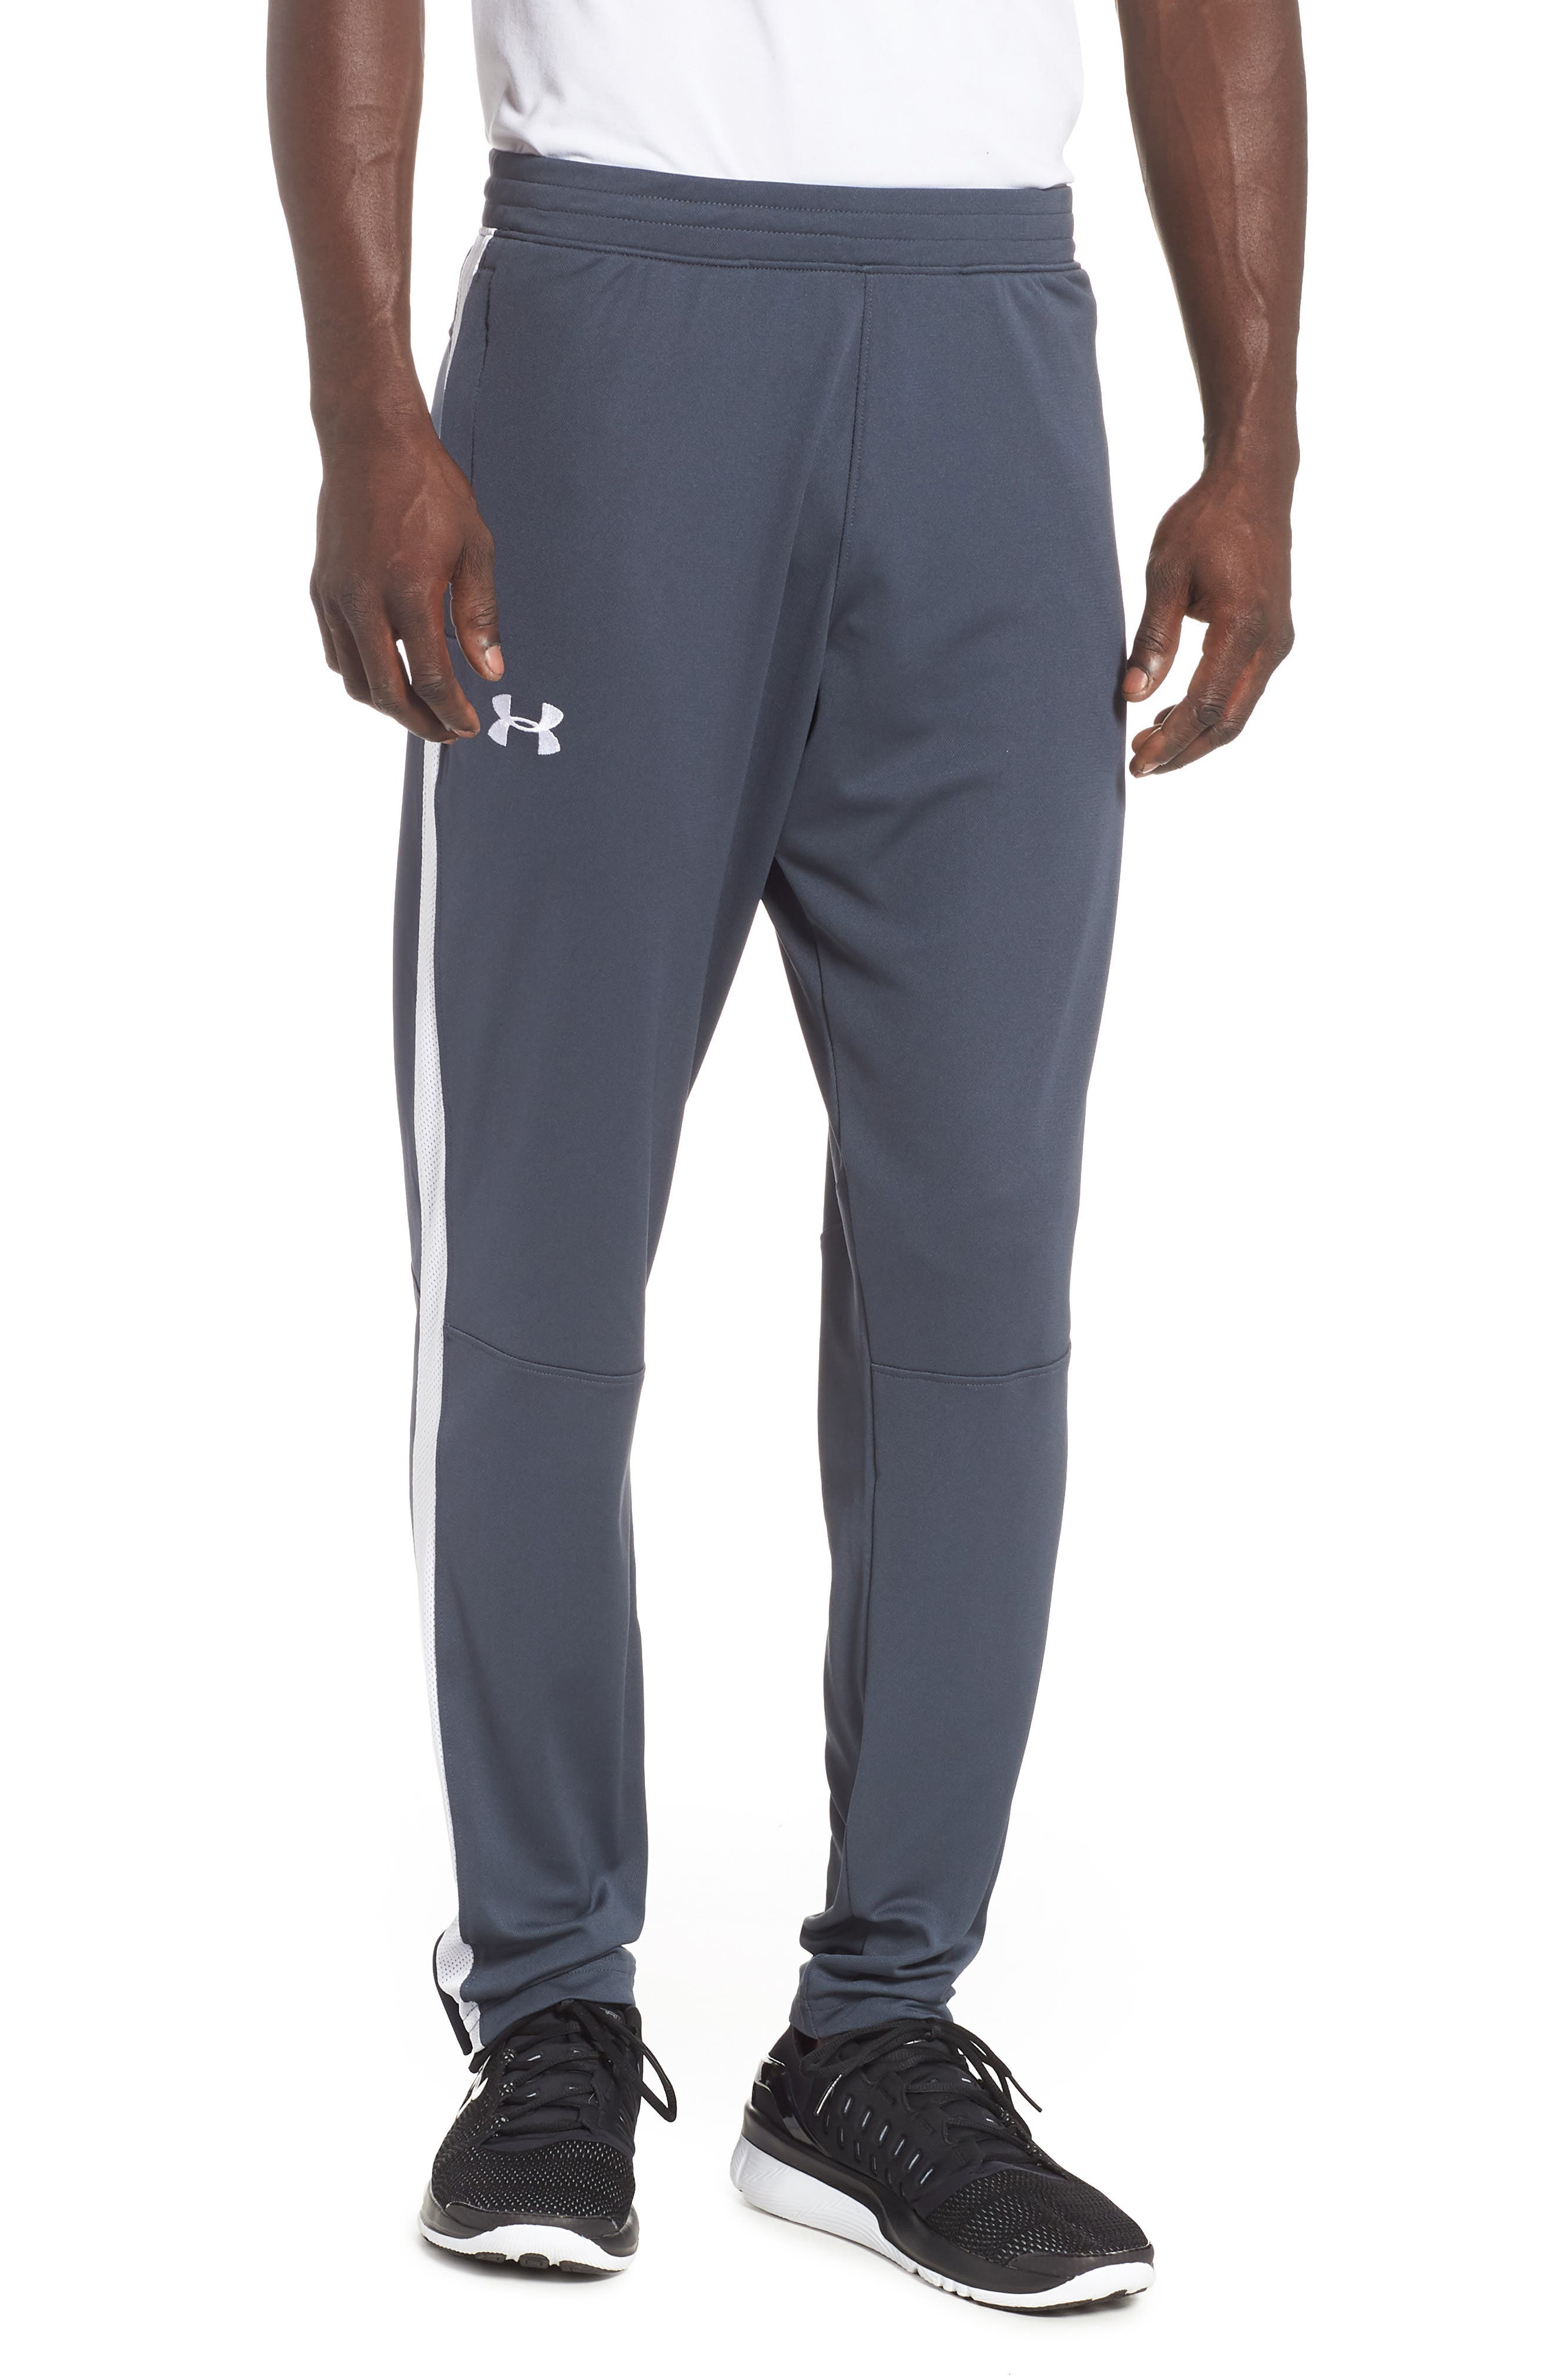 Sportstyle Slim Piqué Track Pants,                         Main,                         color, STEALTH GRAY / / WHITE